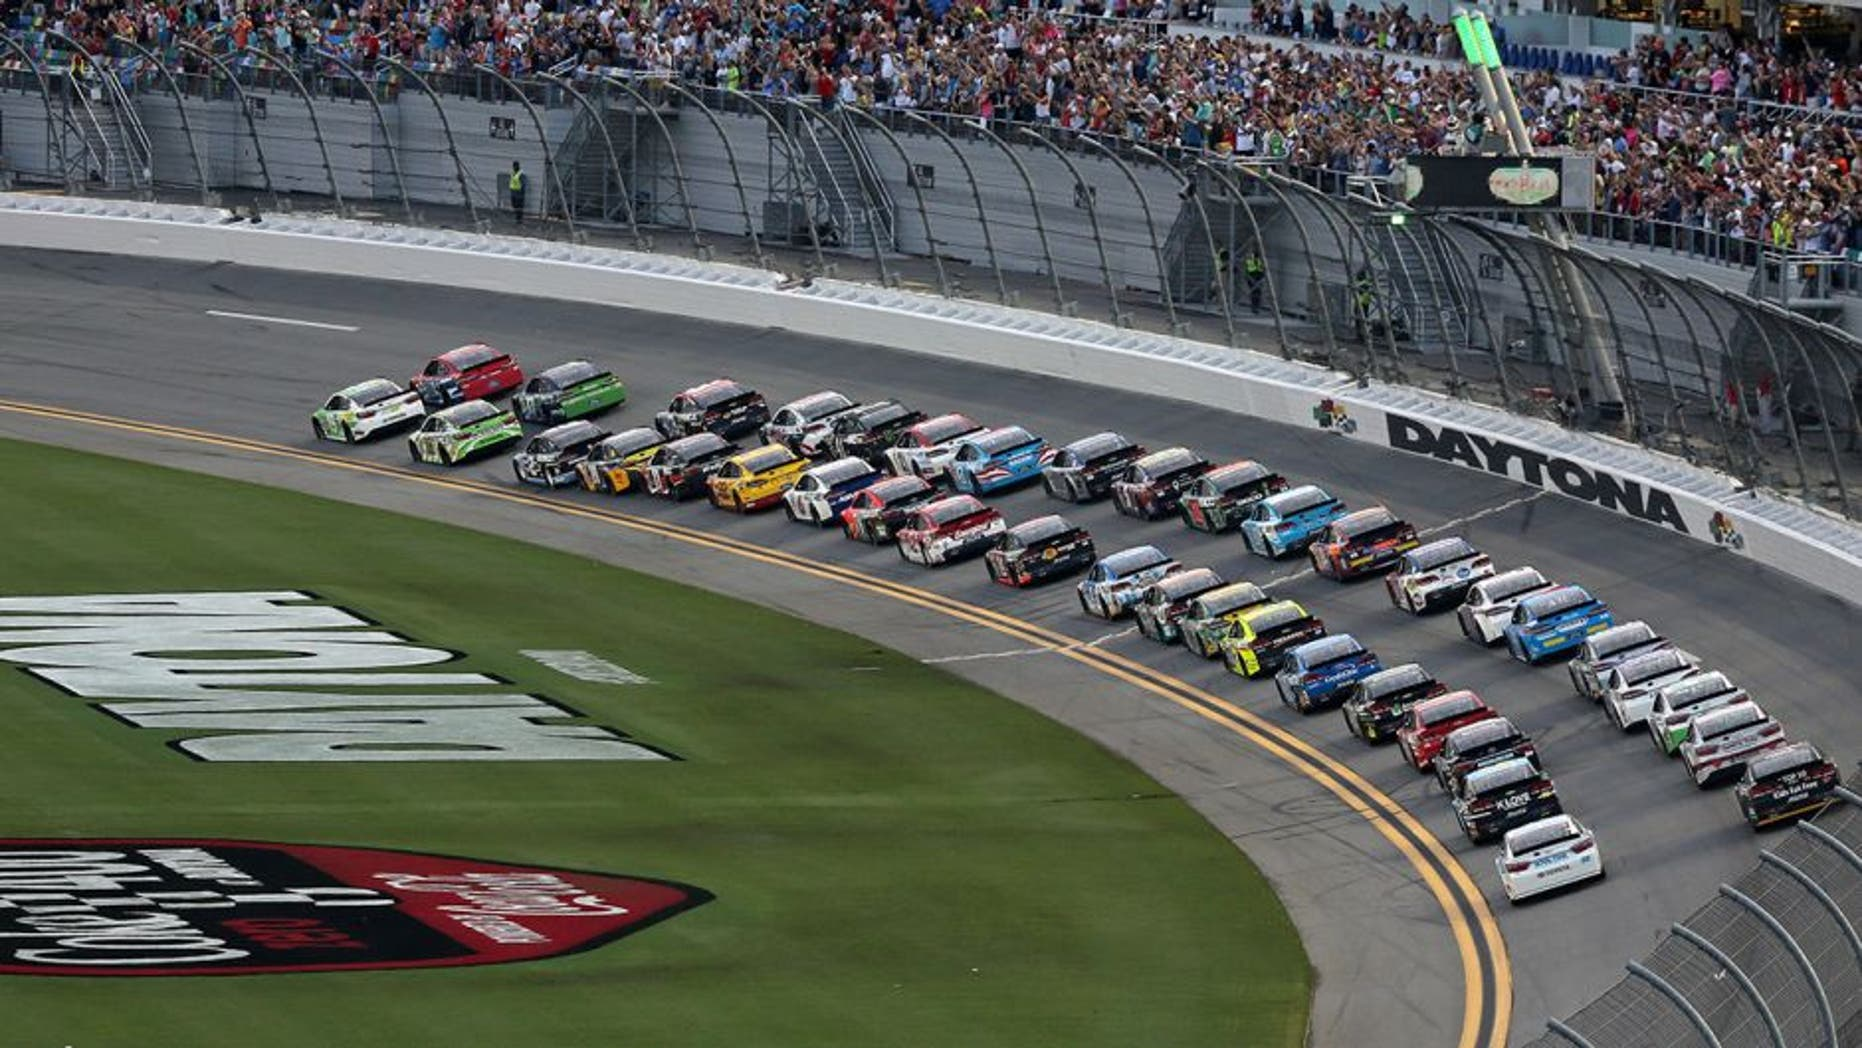 DAYTONA BEACH, FL - JULY 02: Cars race during the NASCAR Sprint Cup Series Coke Zero 400 Powered By Coca-Cola at Daytona International Speedway on July 2, 2016 in Daytona Beach, Florida. (Photo by Jerry Markland/Getty Images)